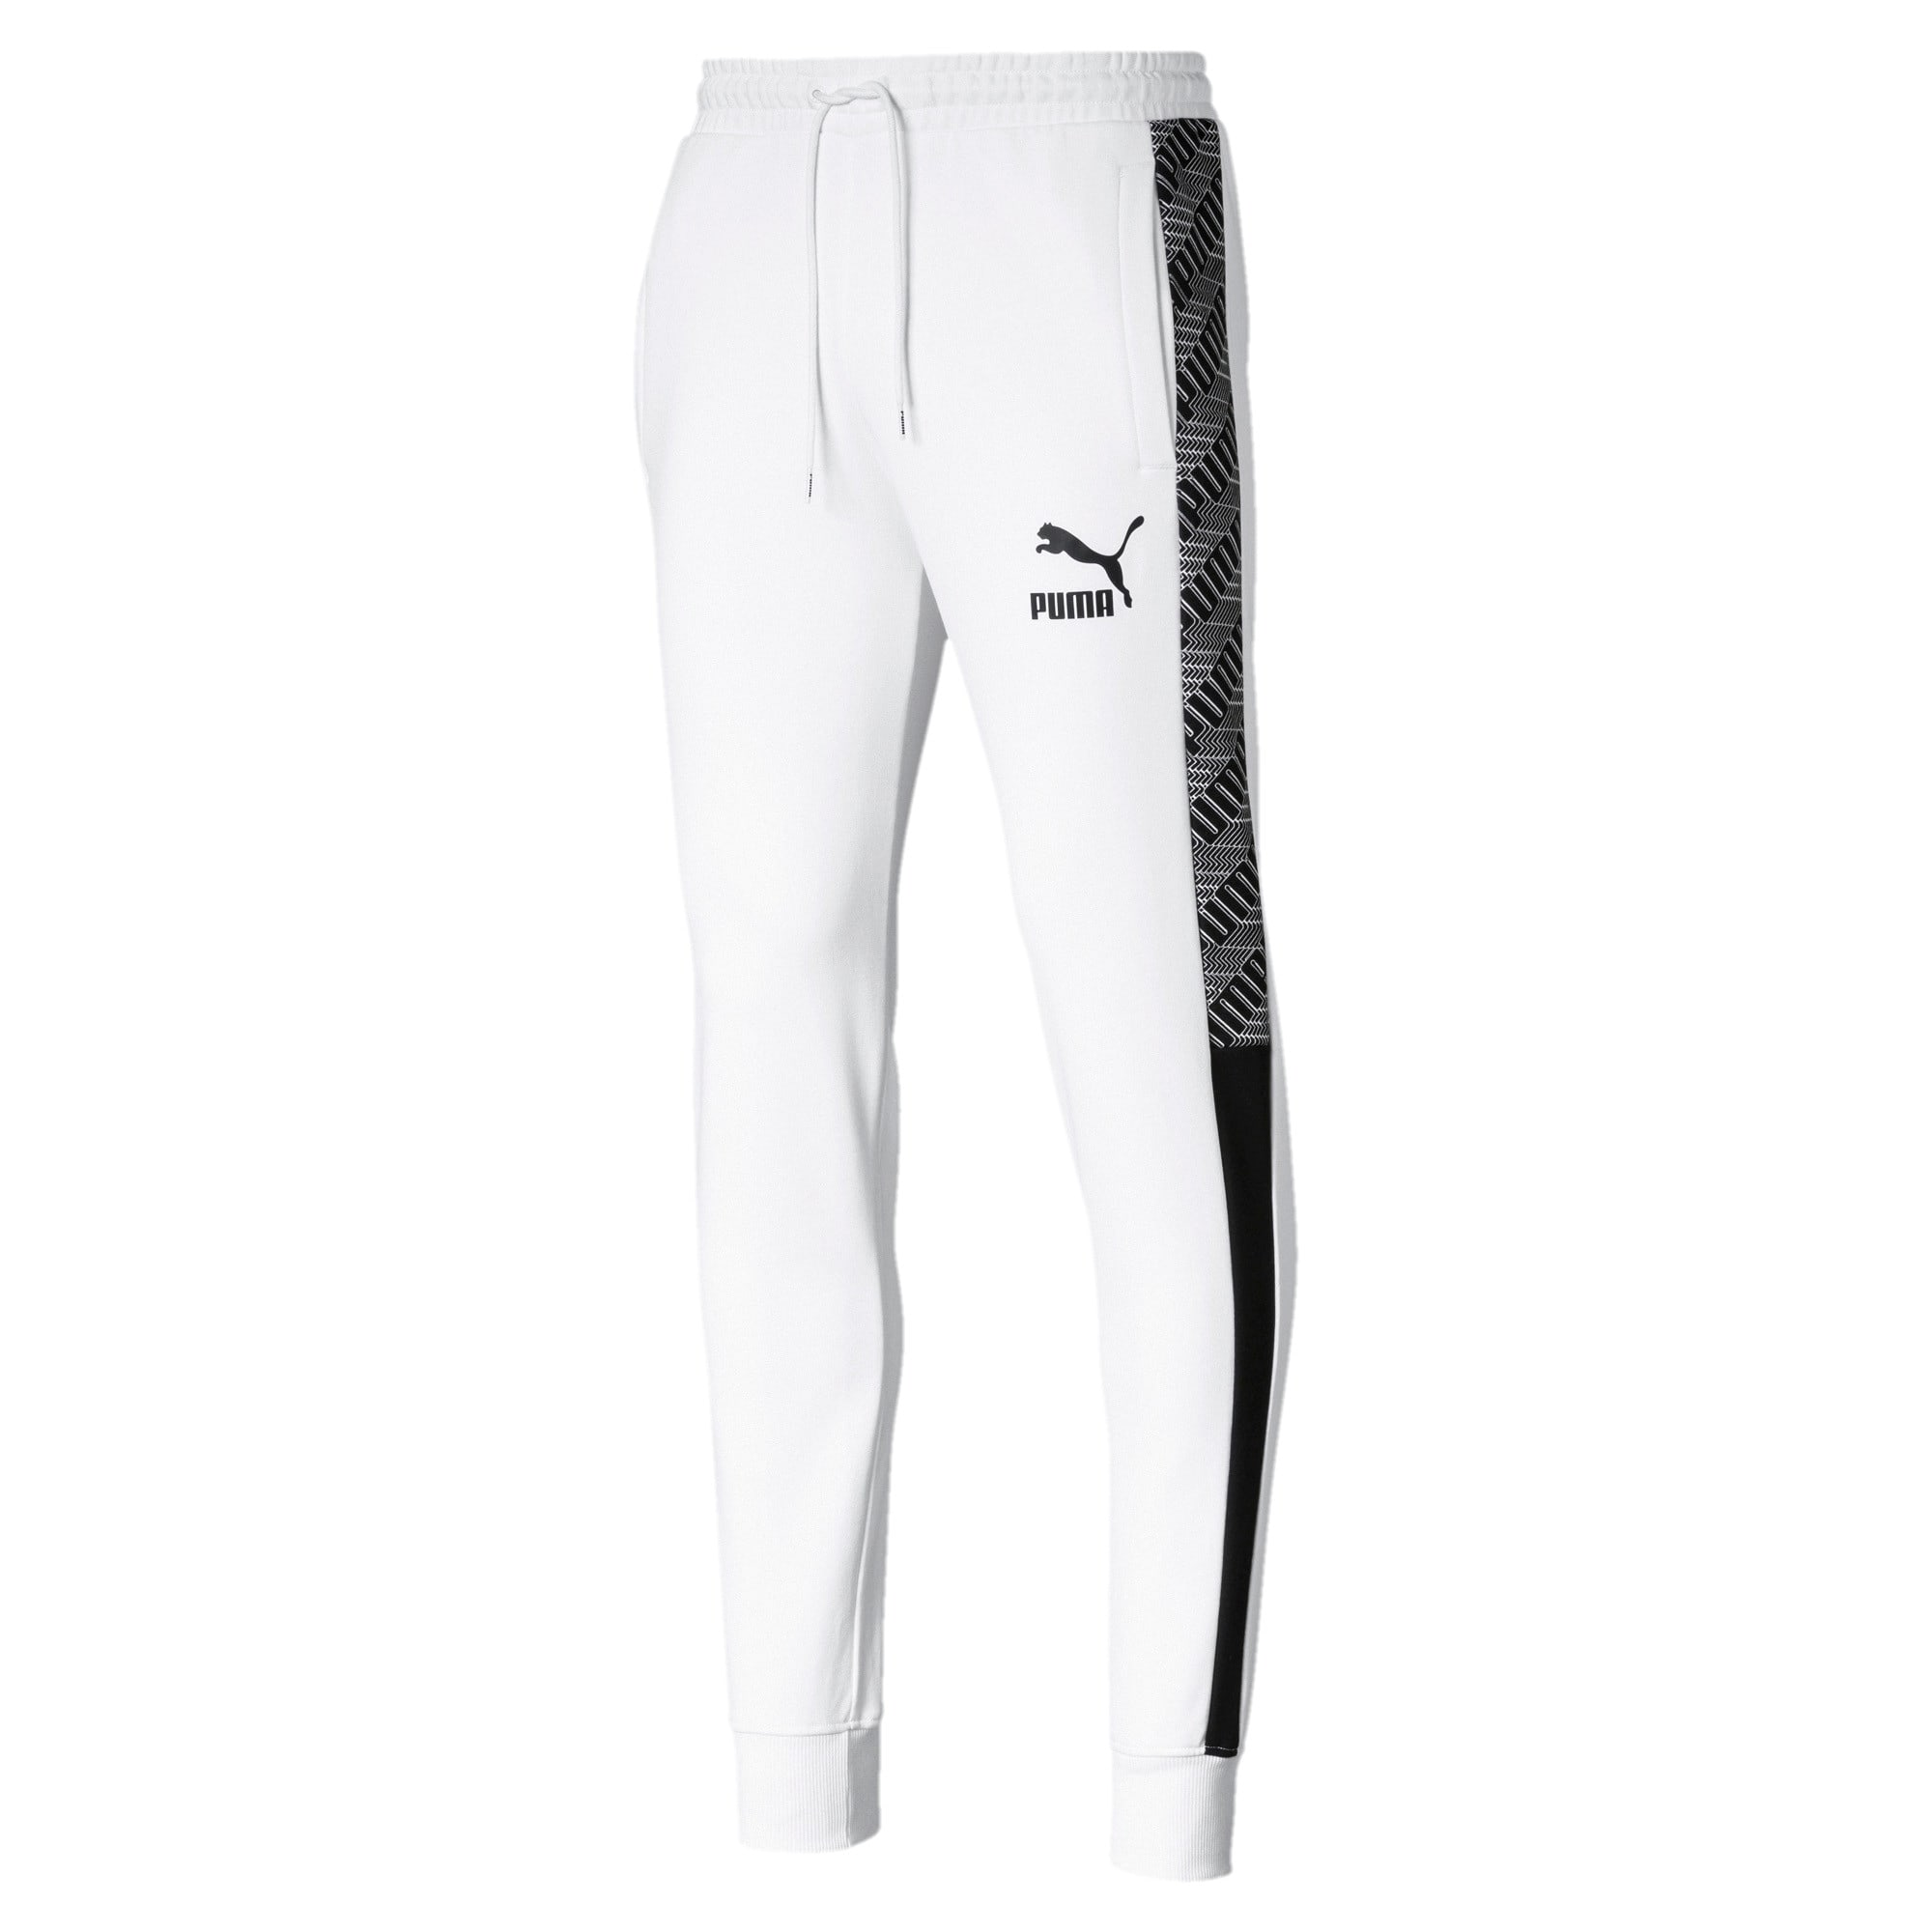 T7 Men's Track Pants, Puma White-Repeat logo, large-IND